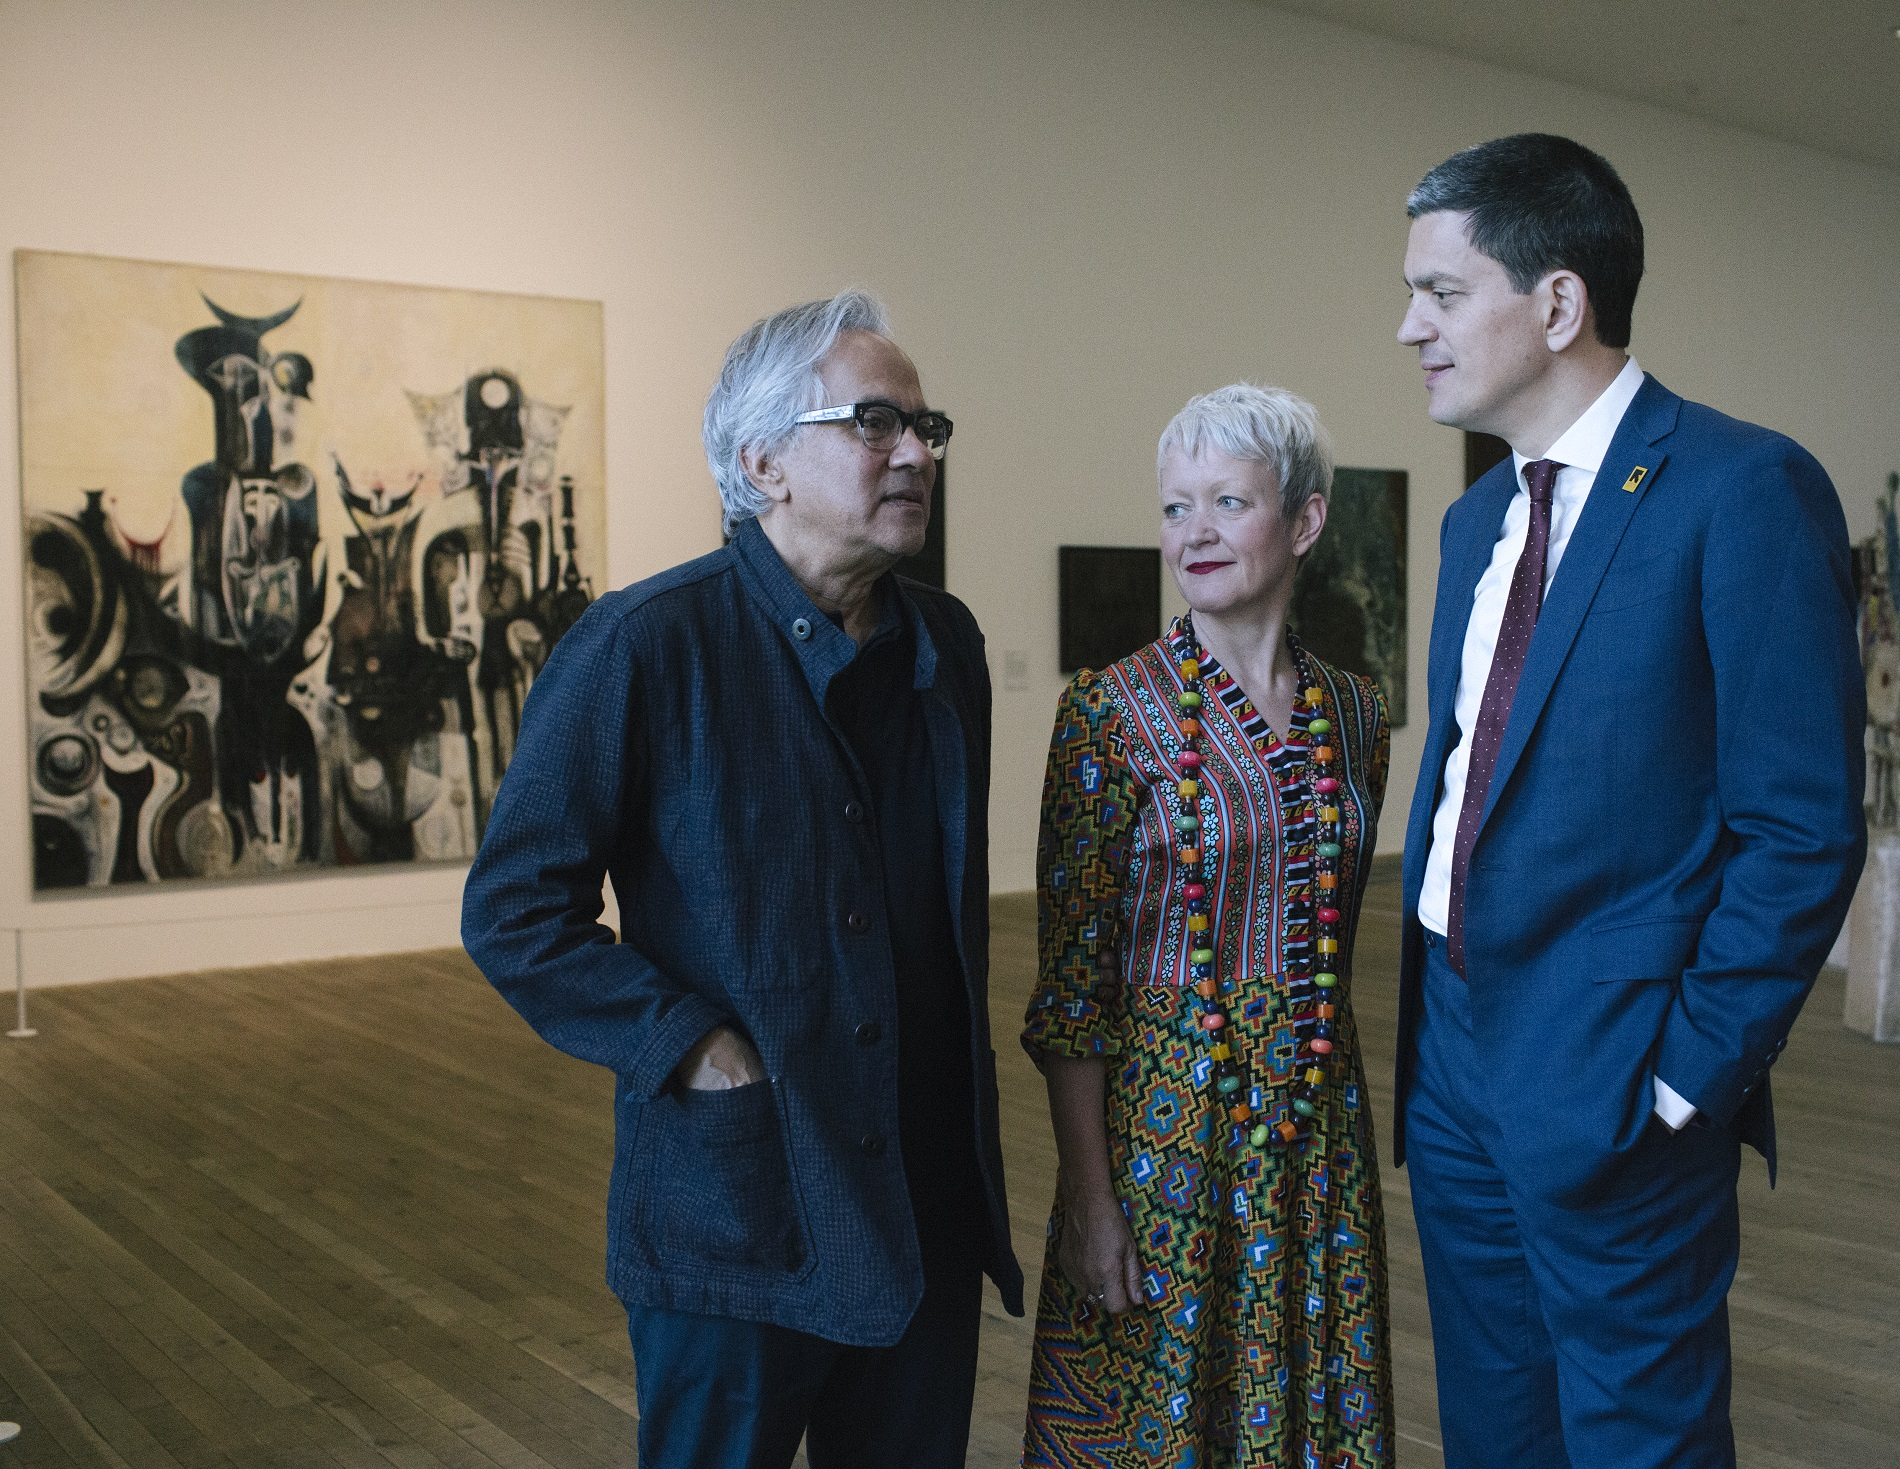 Sir Anish Kapoor, David Miliband and Maria Balshaw at Tate Modern to mark World Refugee Day with the International Rescue Committee